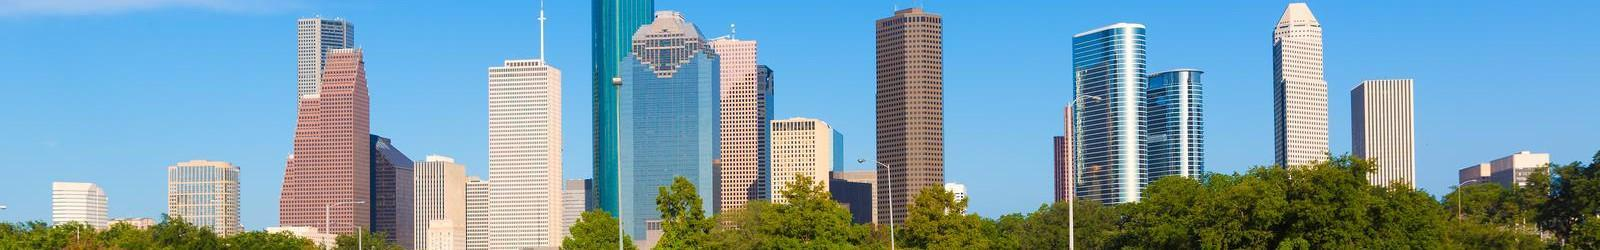 Therapists in Houston, Texas: psychologists, counselors, and mental health specialists